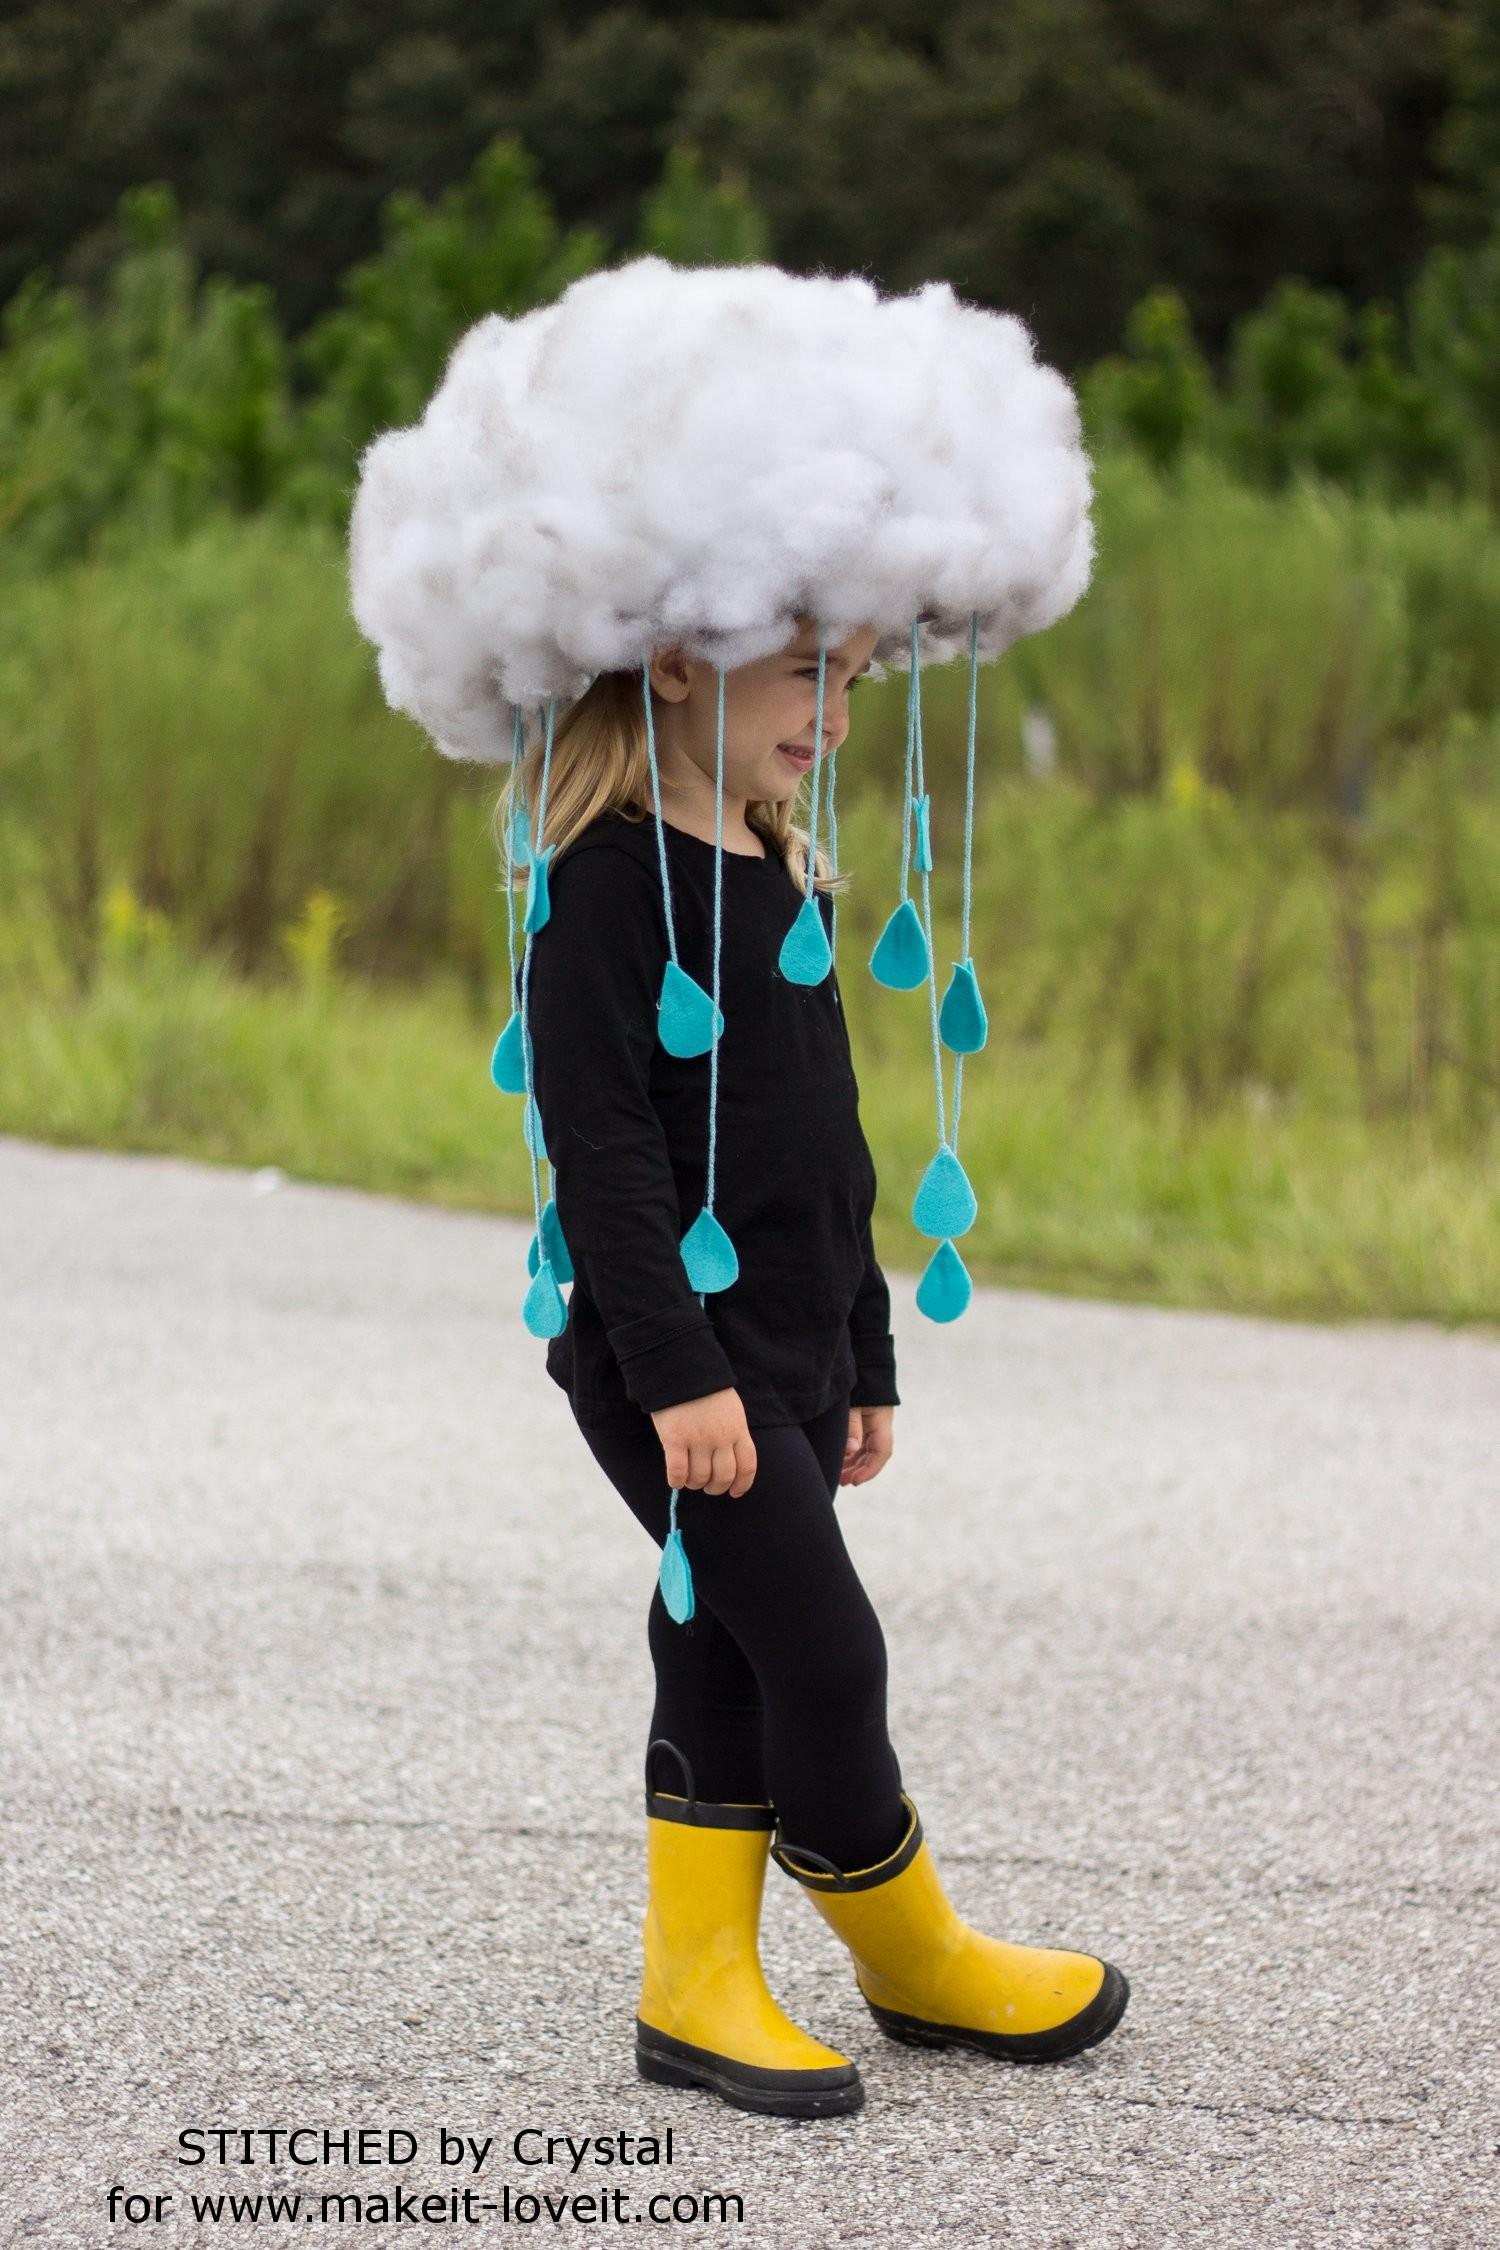 Make Quick Easy Rain Cloud Costume All Ages